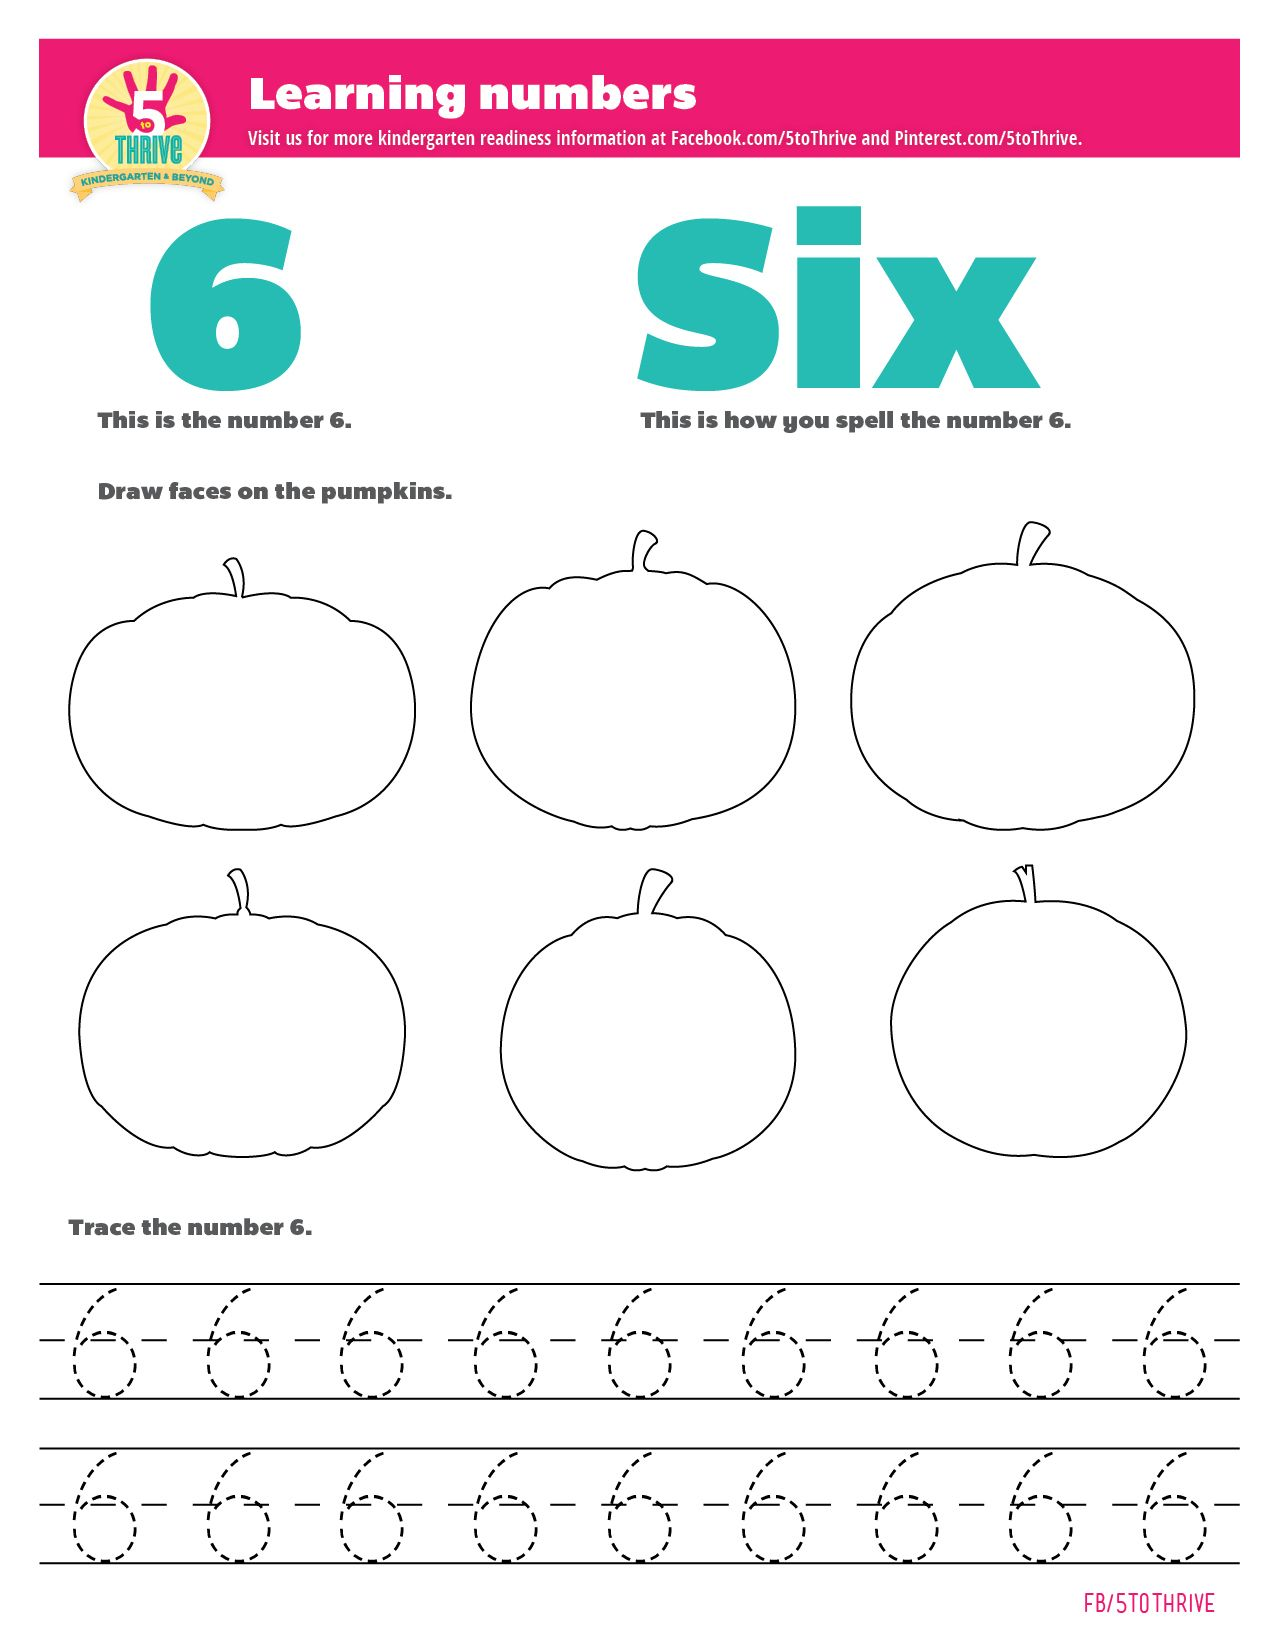 Learning Numbers This Is What The Number 6 Looks Like This Is How You Spell The Number Six